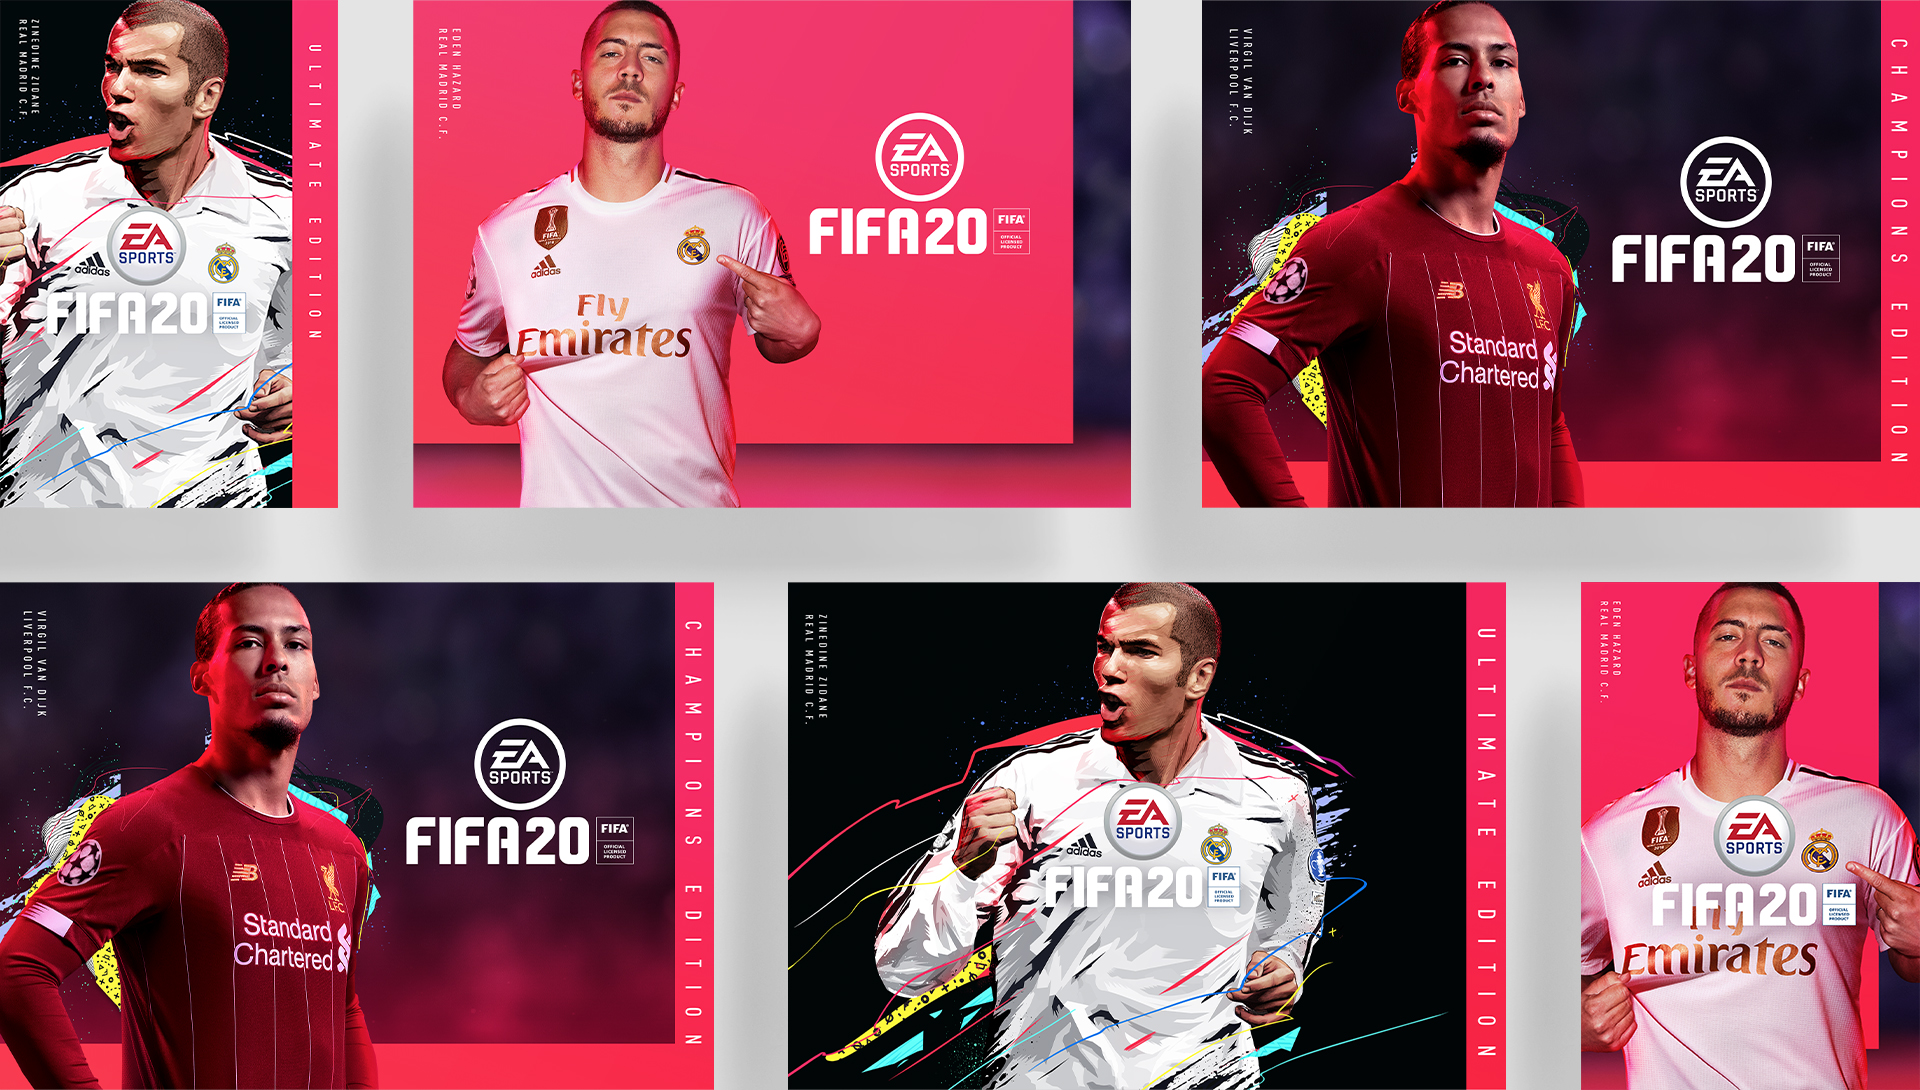 design_fifa_poster_ea_artwork